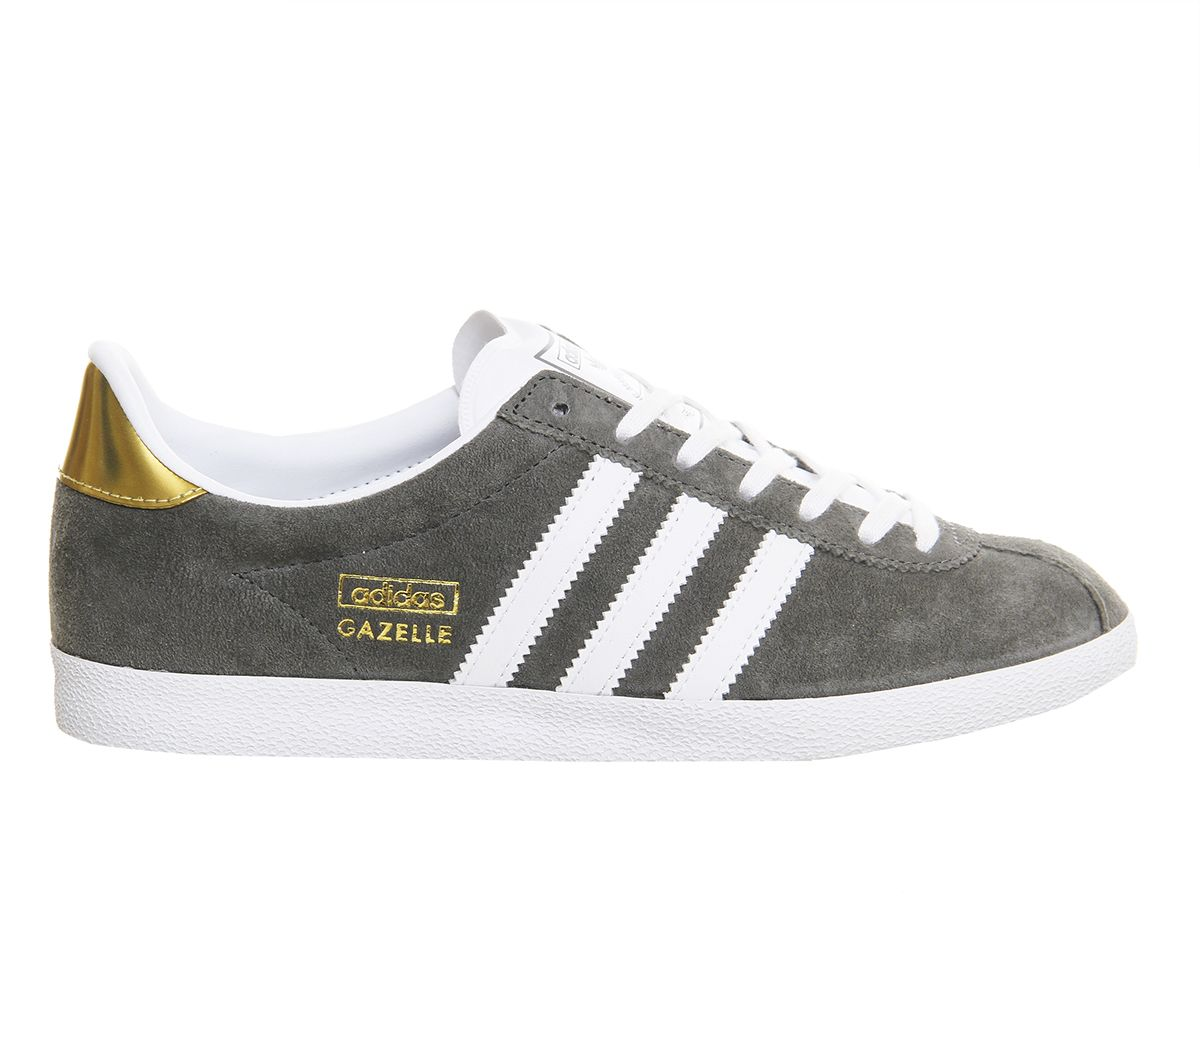 Metallic Ash Og Hers Adidas Trainers Gazelle Gold White 8mN0ynOvw